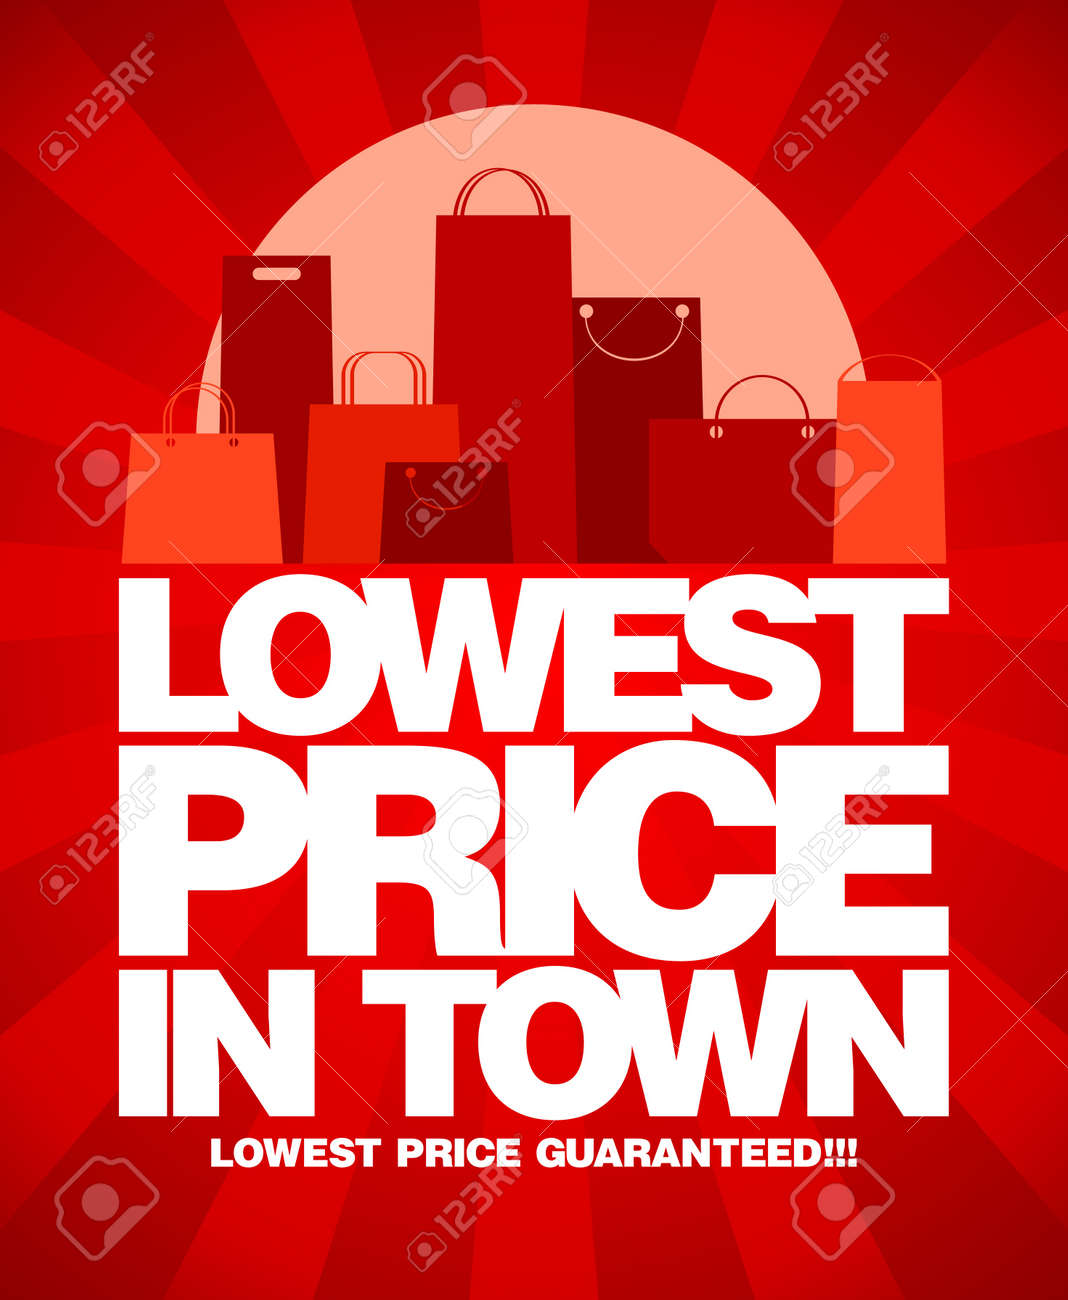 Price for a poster design - Lowest Price In Town Sale Design With Shopping Bags Stock Vector 14035090